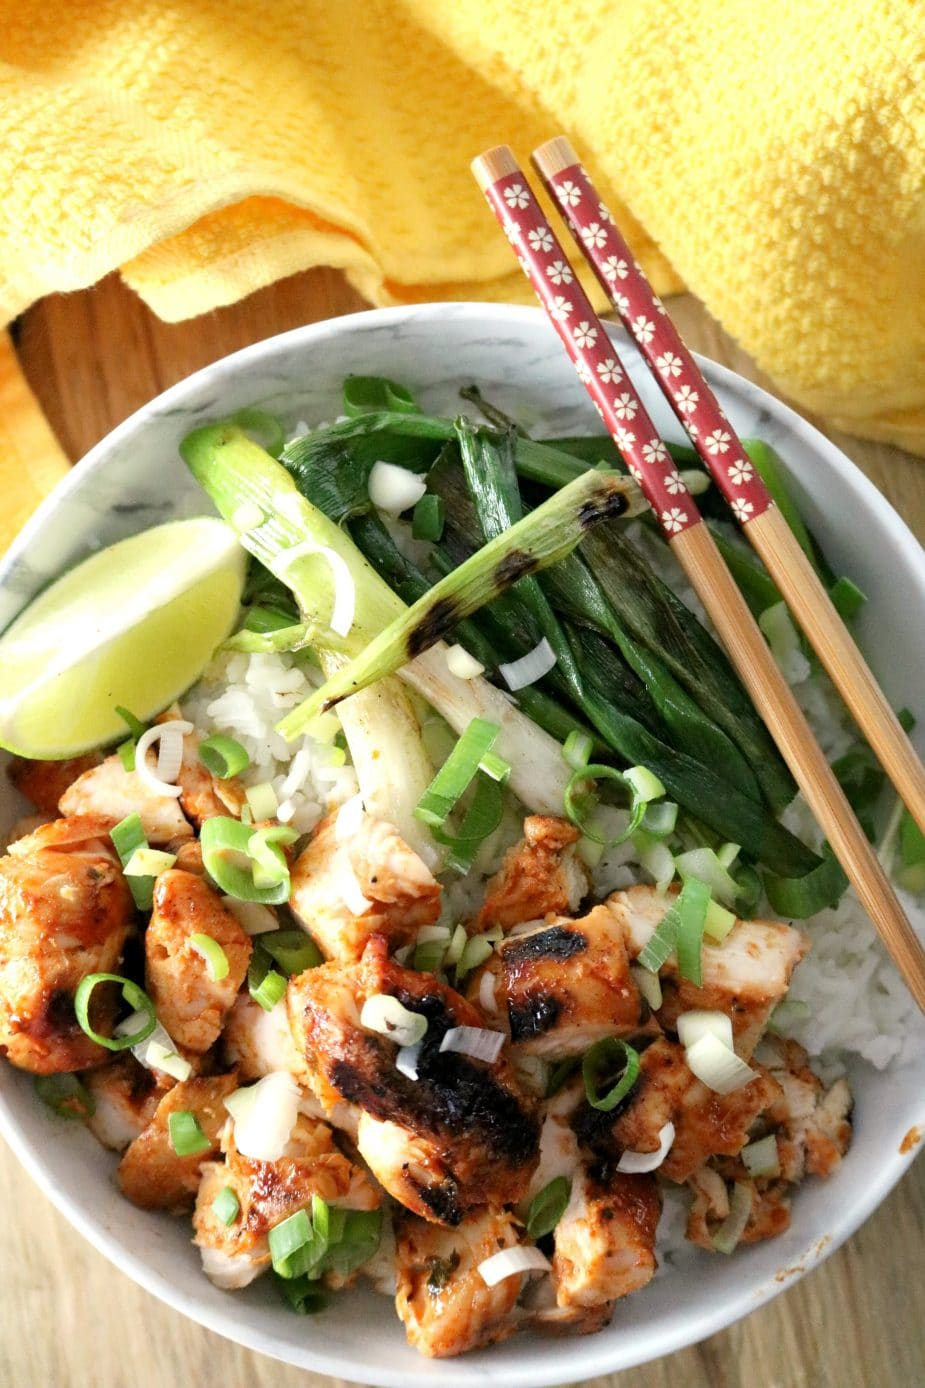 Grilled Korean Chicken skewers in a bowl on a bed of rice with a side of grilled green onions and a wedge of lime for garnish.